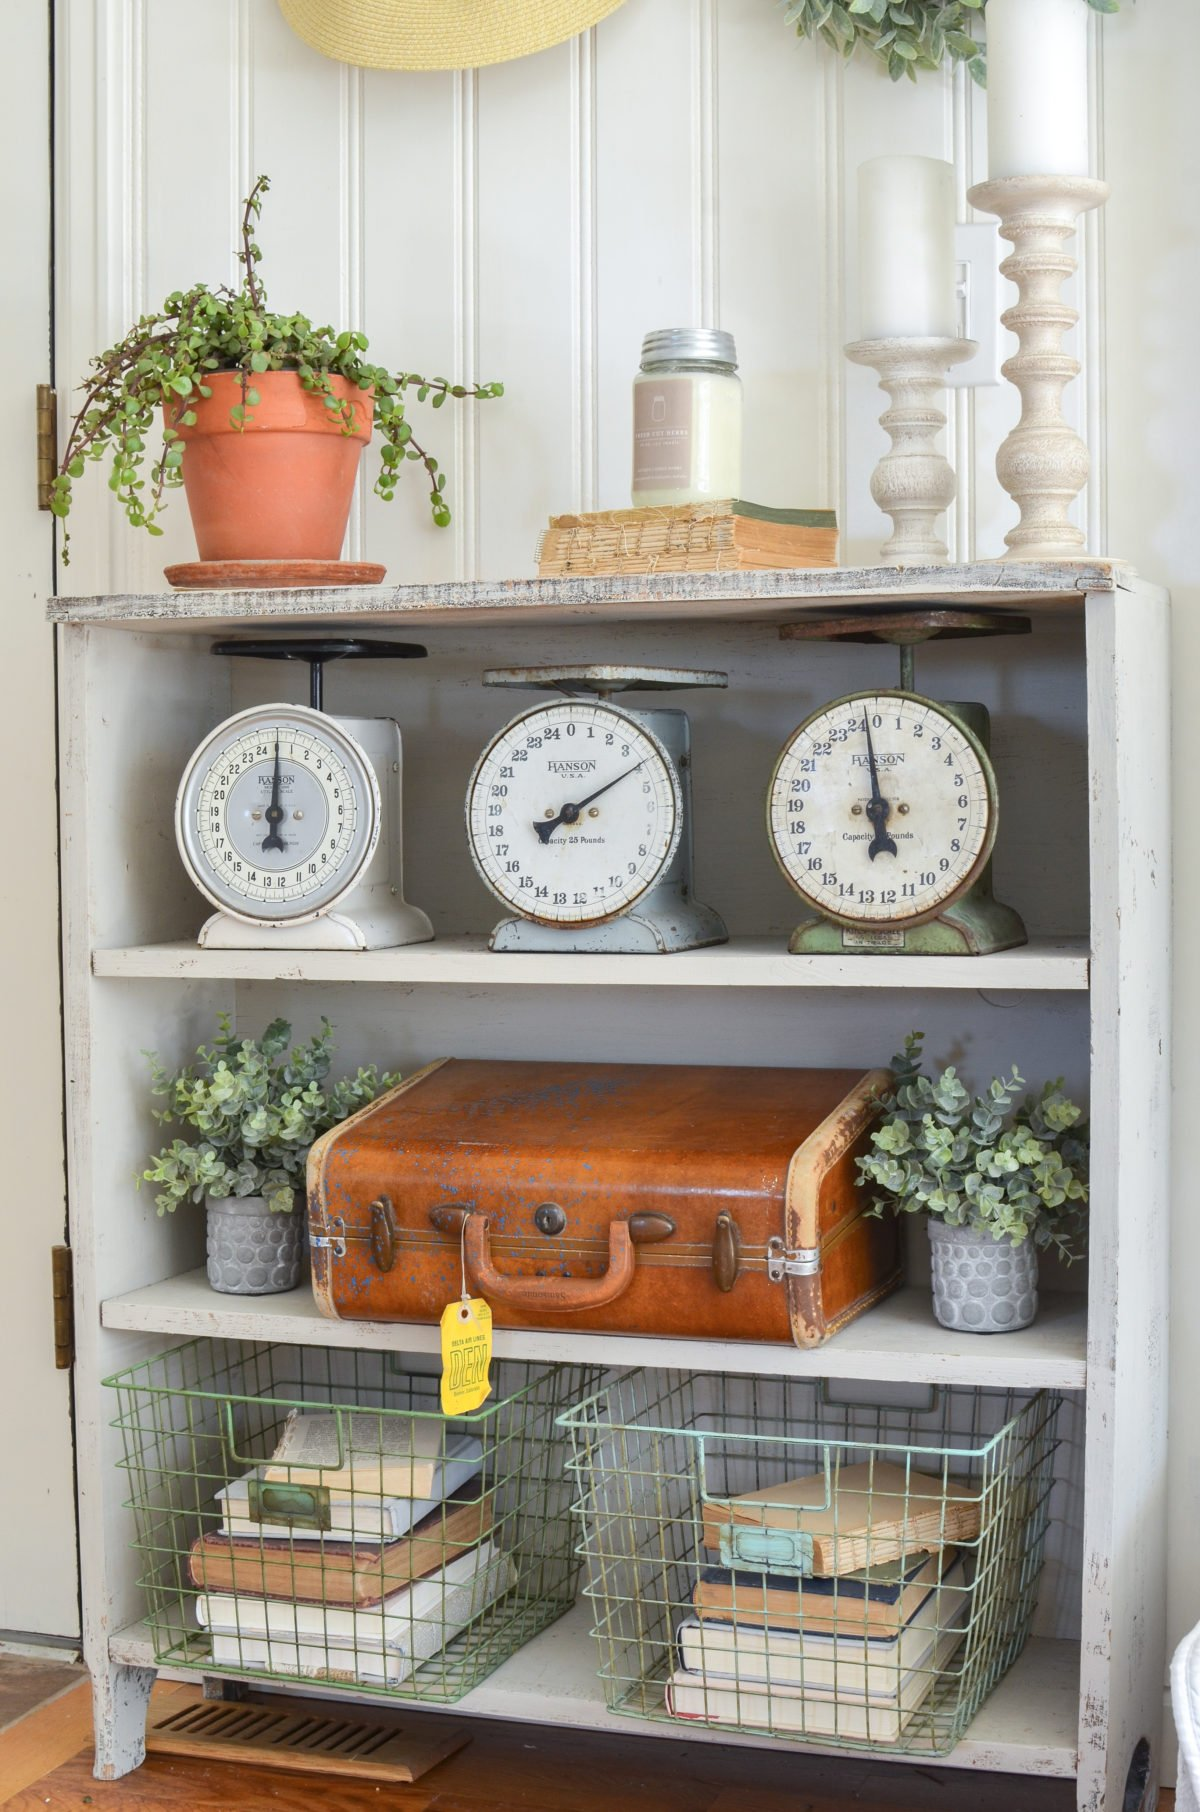 How to Style a Vintage Suitcase 5 Different Ways